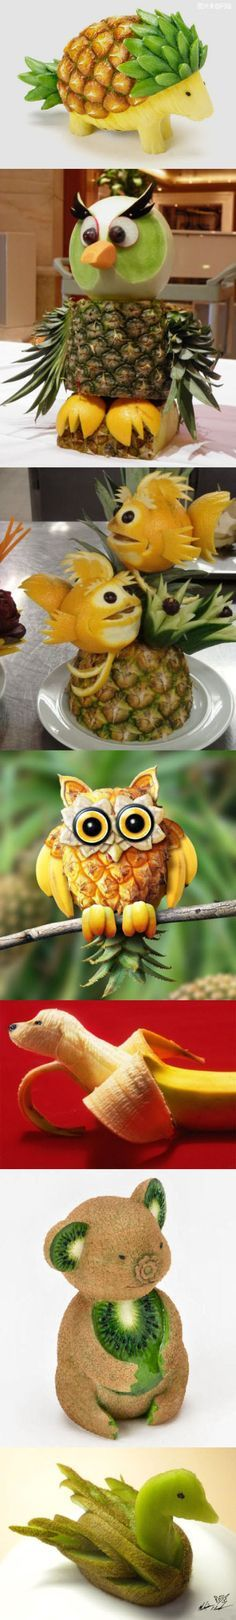 now that's a crafty food recipe! - 15 of the Best Edible Sculptures (best fruit recipes) Cute Food, Good Food, Yummy Food, Healthy Food, Fruits Decoration, Fruit Animals, Fruit Creations, Food Sculpture, Fruit Sculptures